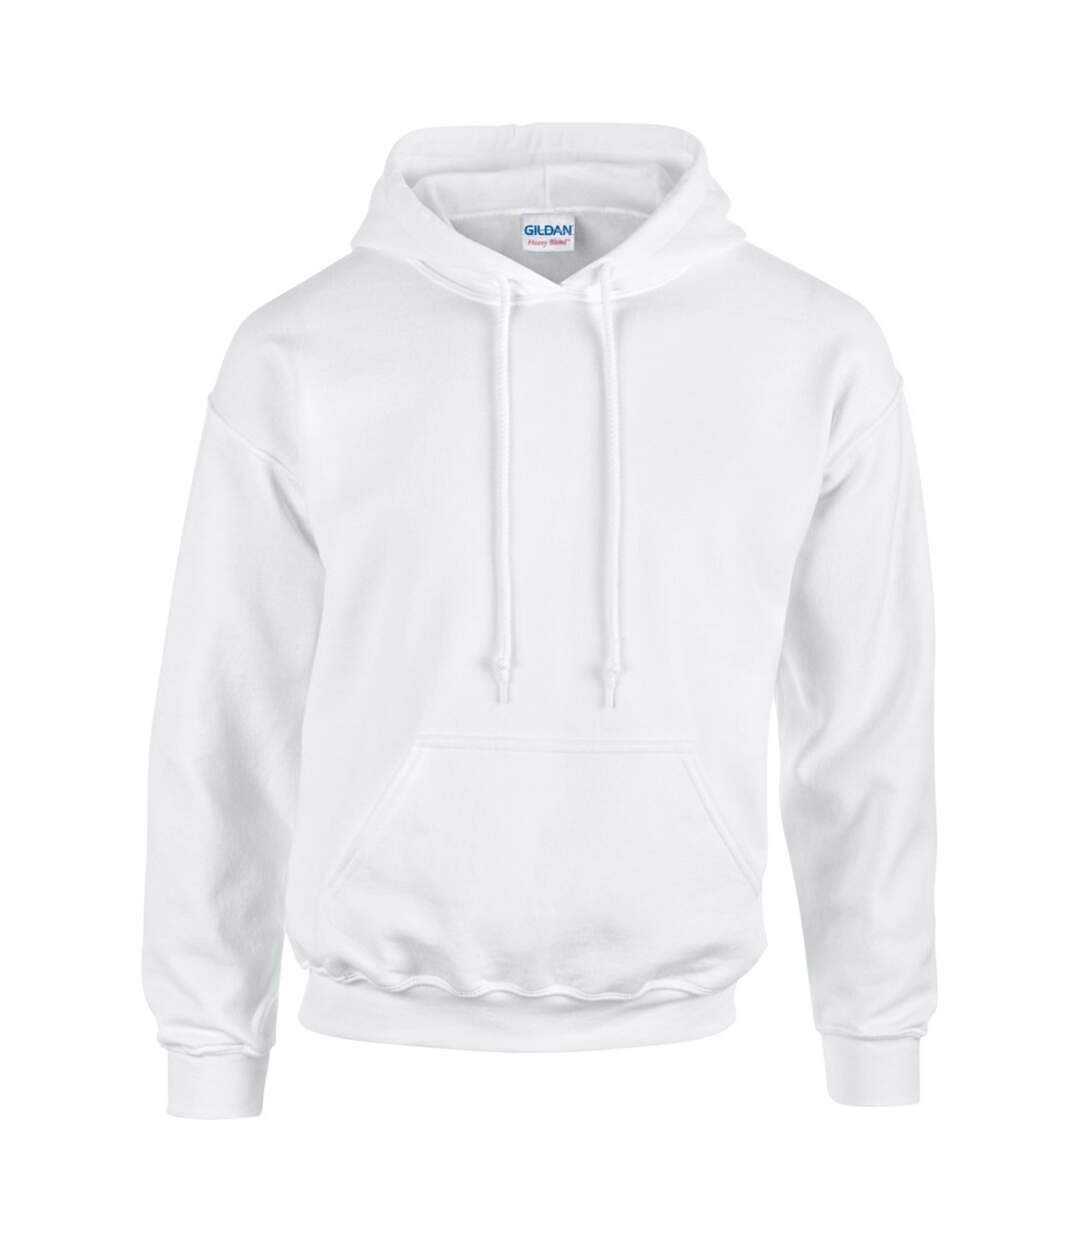 Gildan Heavy Blend Adult Unisex Hooded Sweatshirt / Hoodie (Sport Grey) - UTBC468